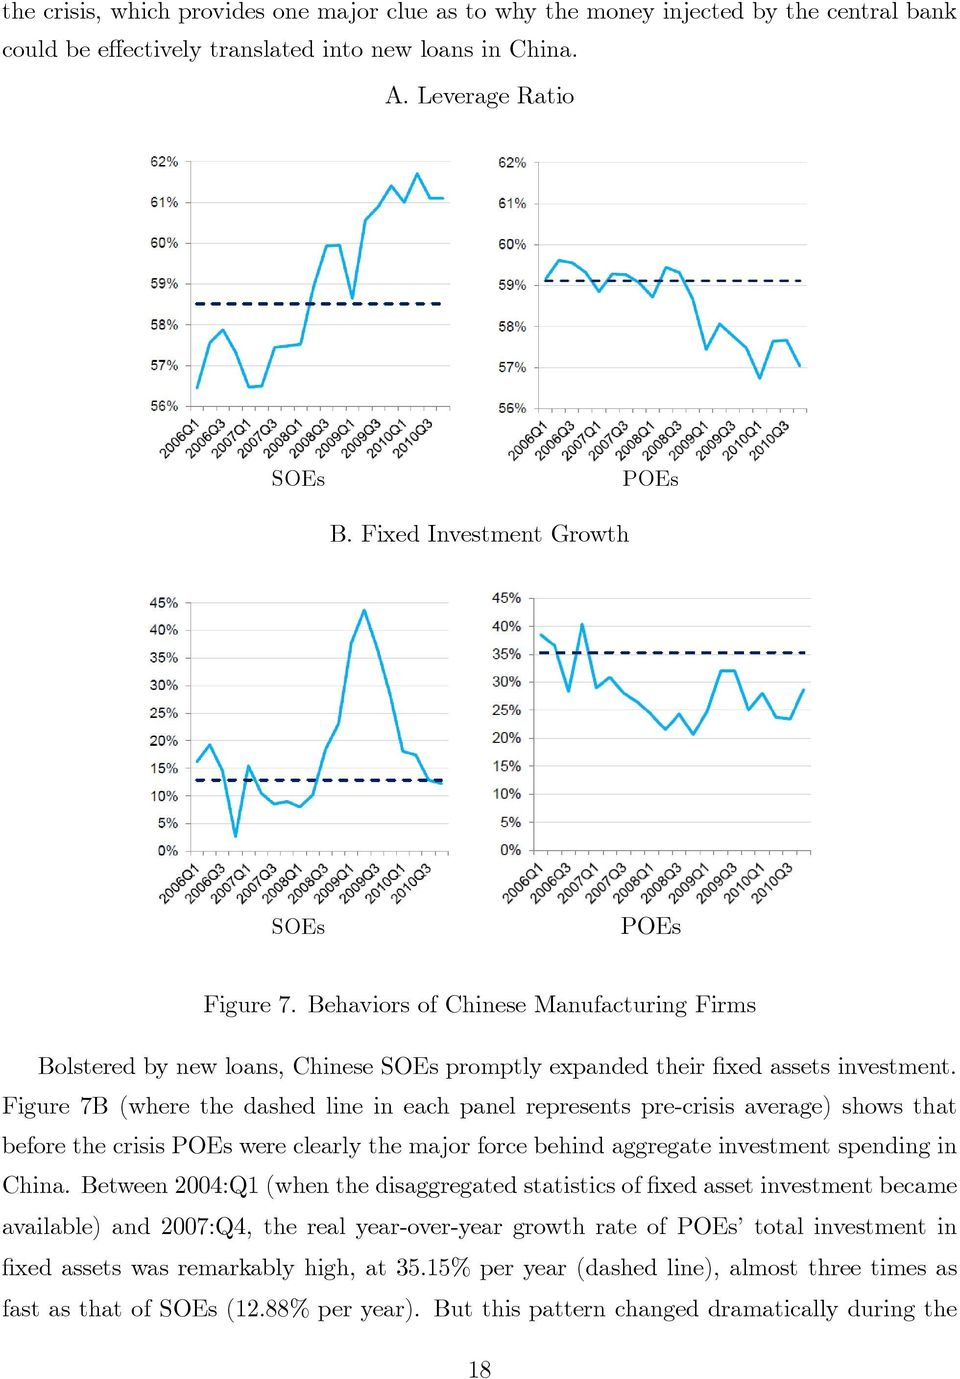 Figure 7B (where he dashed line in each panel represens pre-crisis average) shows ha before he crisis POEs were clearly he major force behind aggregae invesmen spending in China.